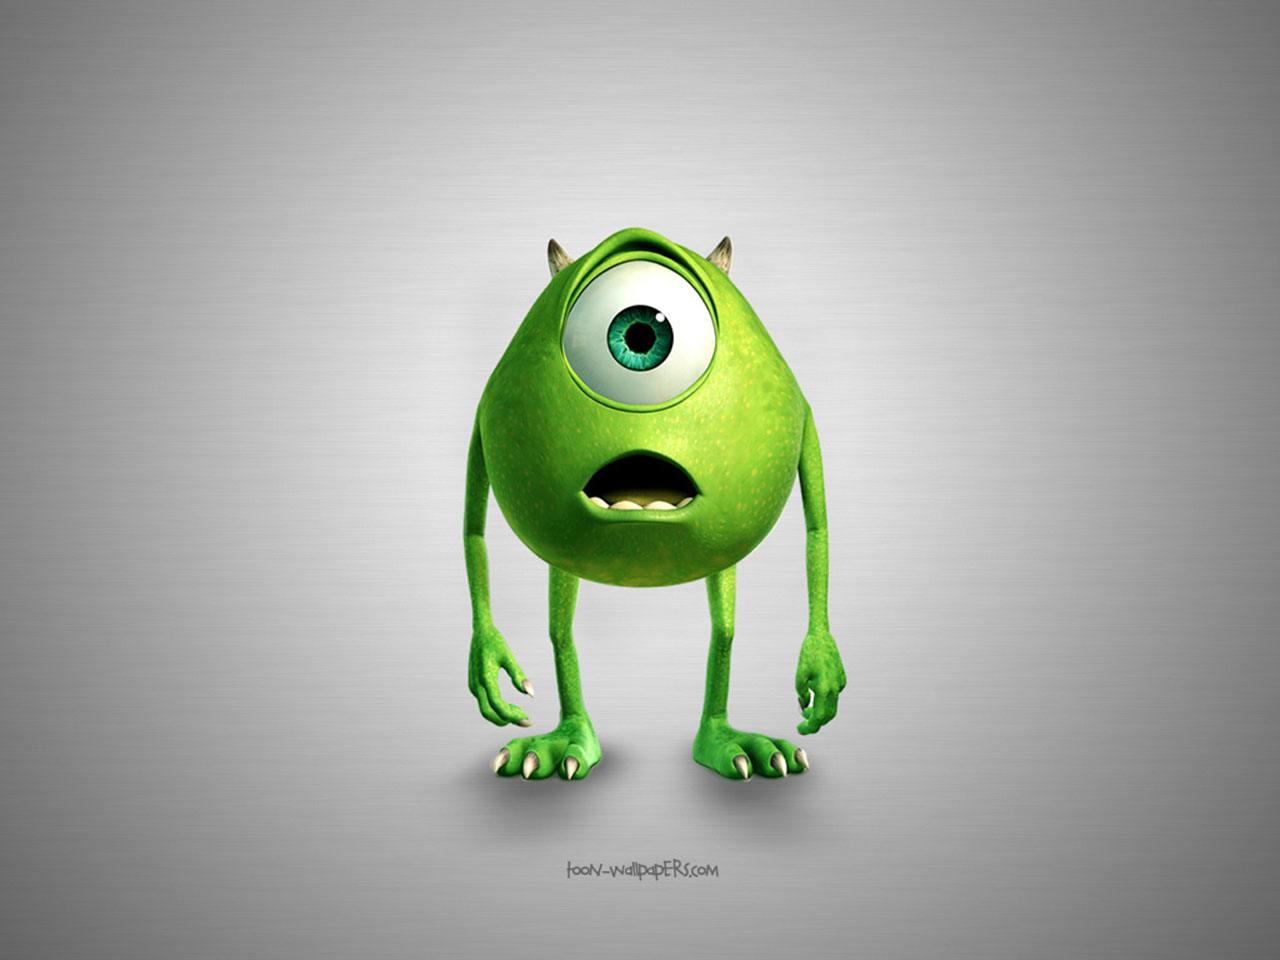 Monsters Inc Wallpapers Tumblr